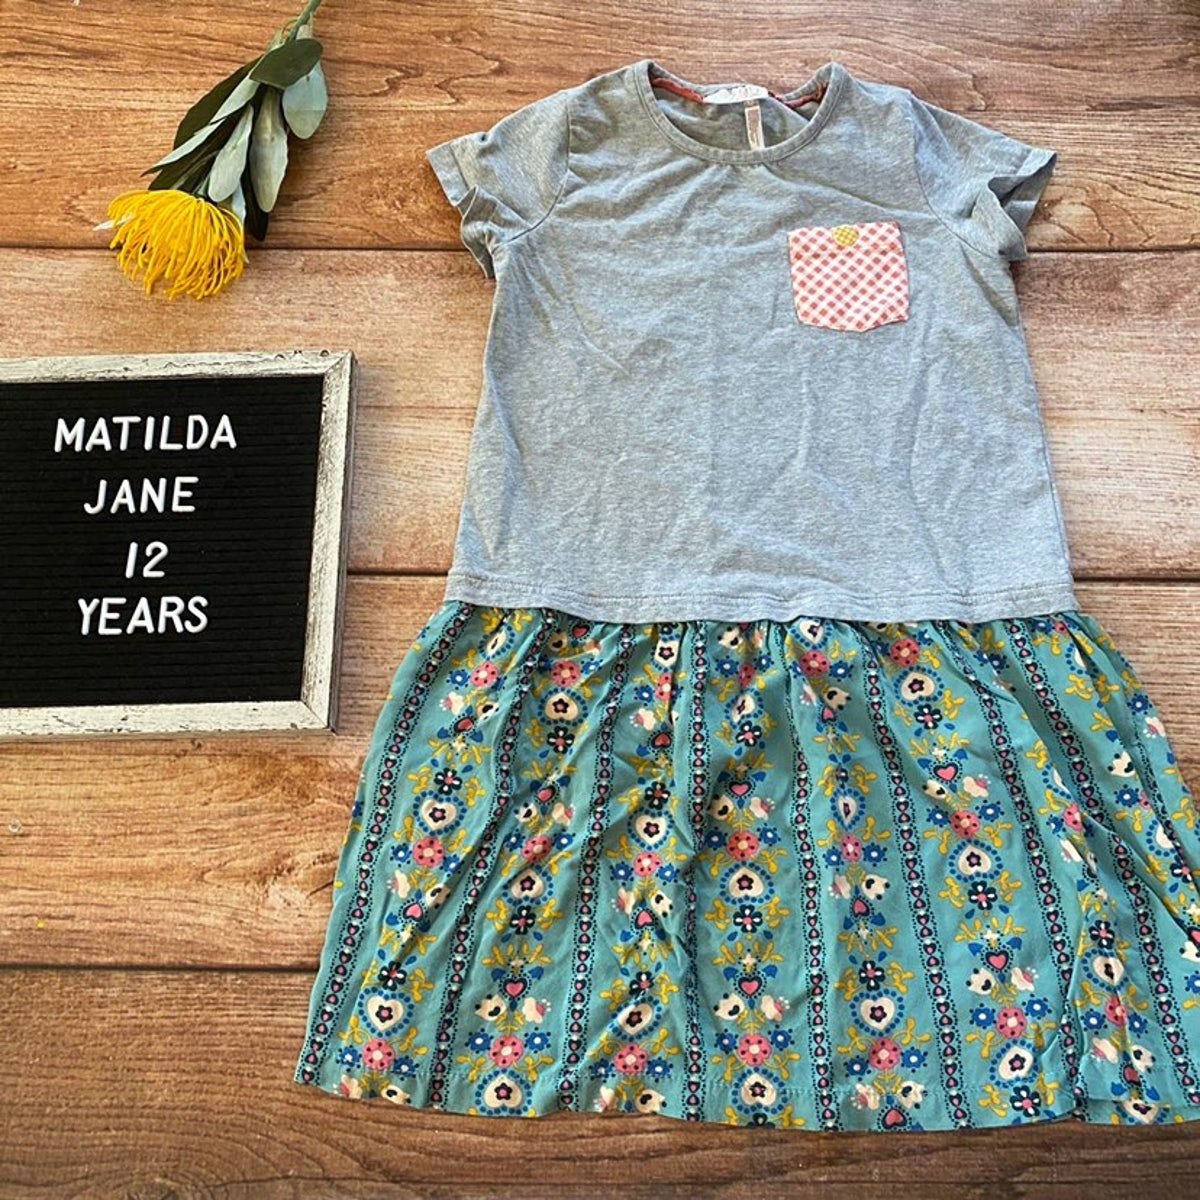 Matilda Jane 435 Curtsey dress size 12 years from Once Upon a Time line fall 2016 in very good used condition (L0928)